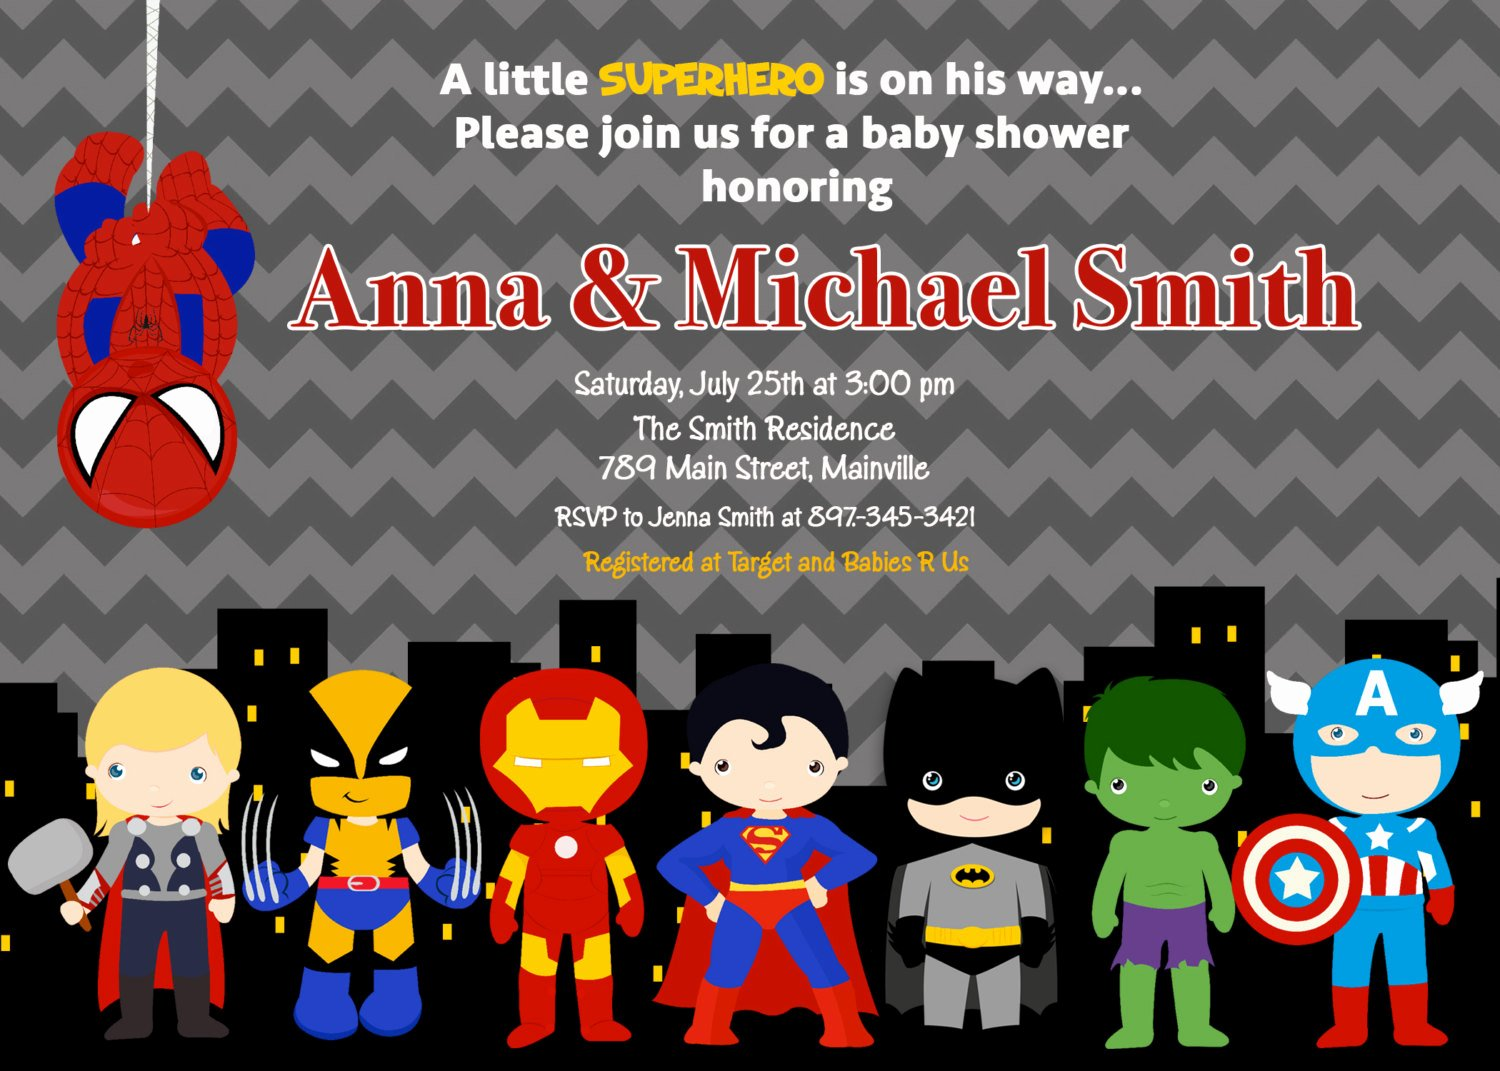 Superhero Baby Shower Invitations Free Awesome Superhero Baby Shower Invitation Printable or Printed with